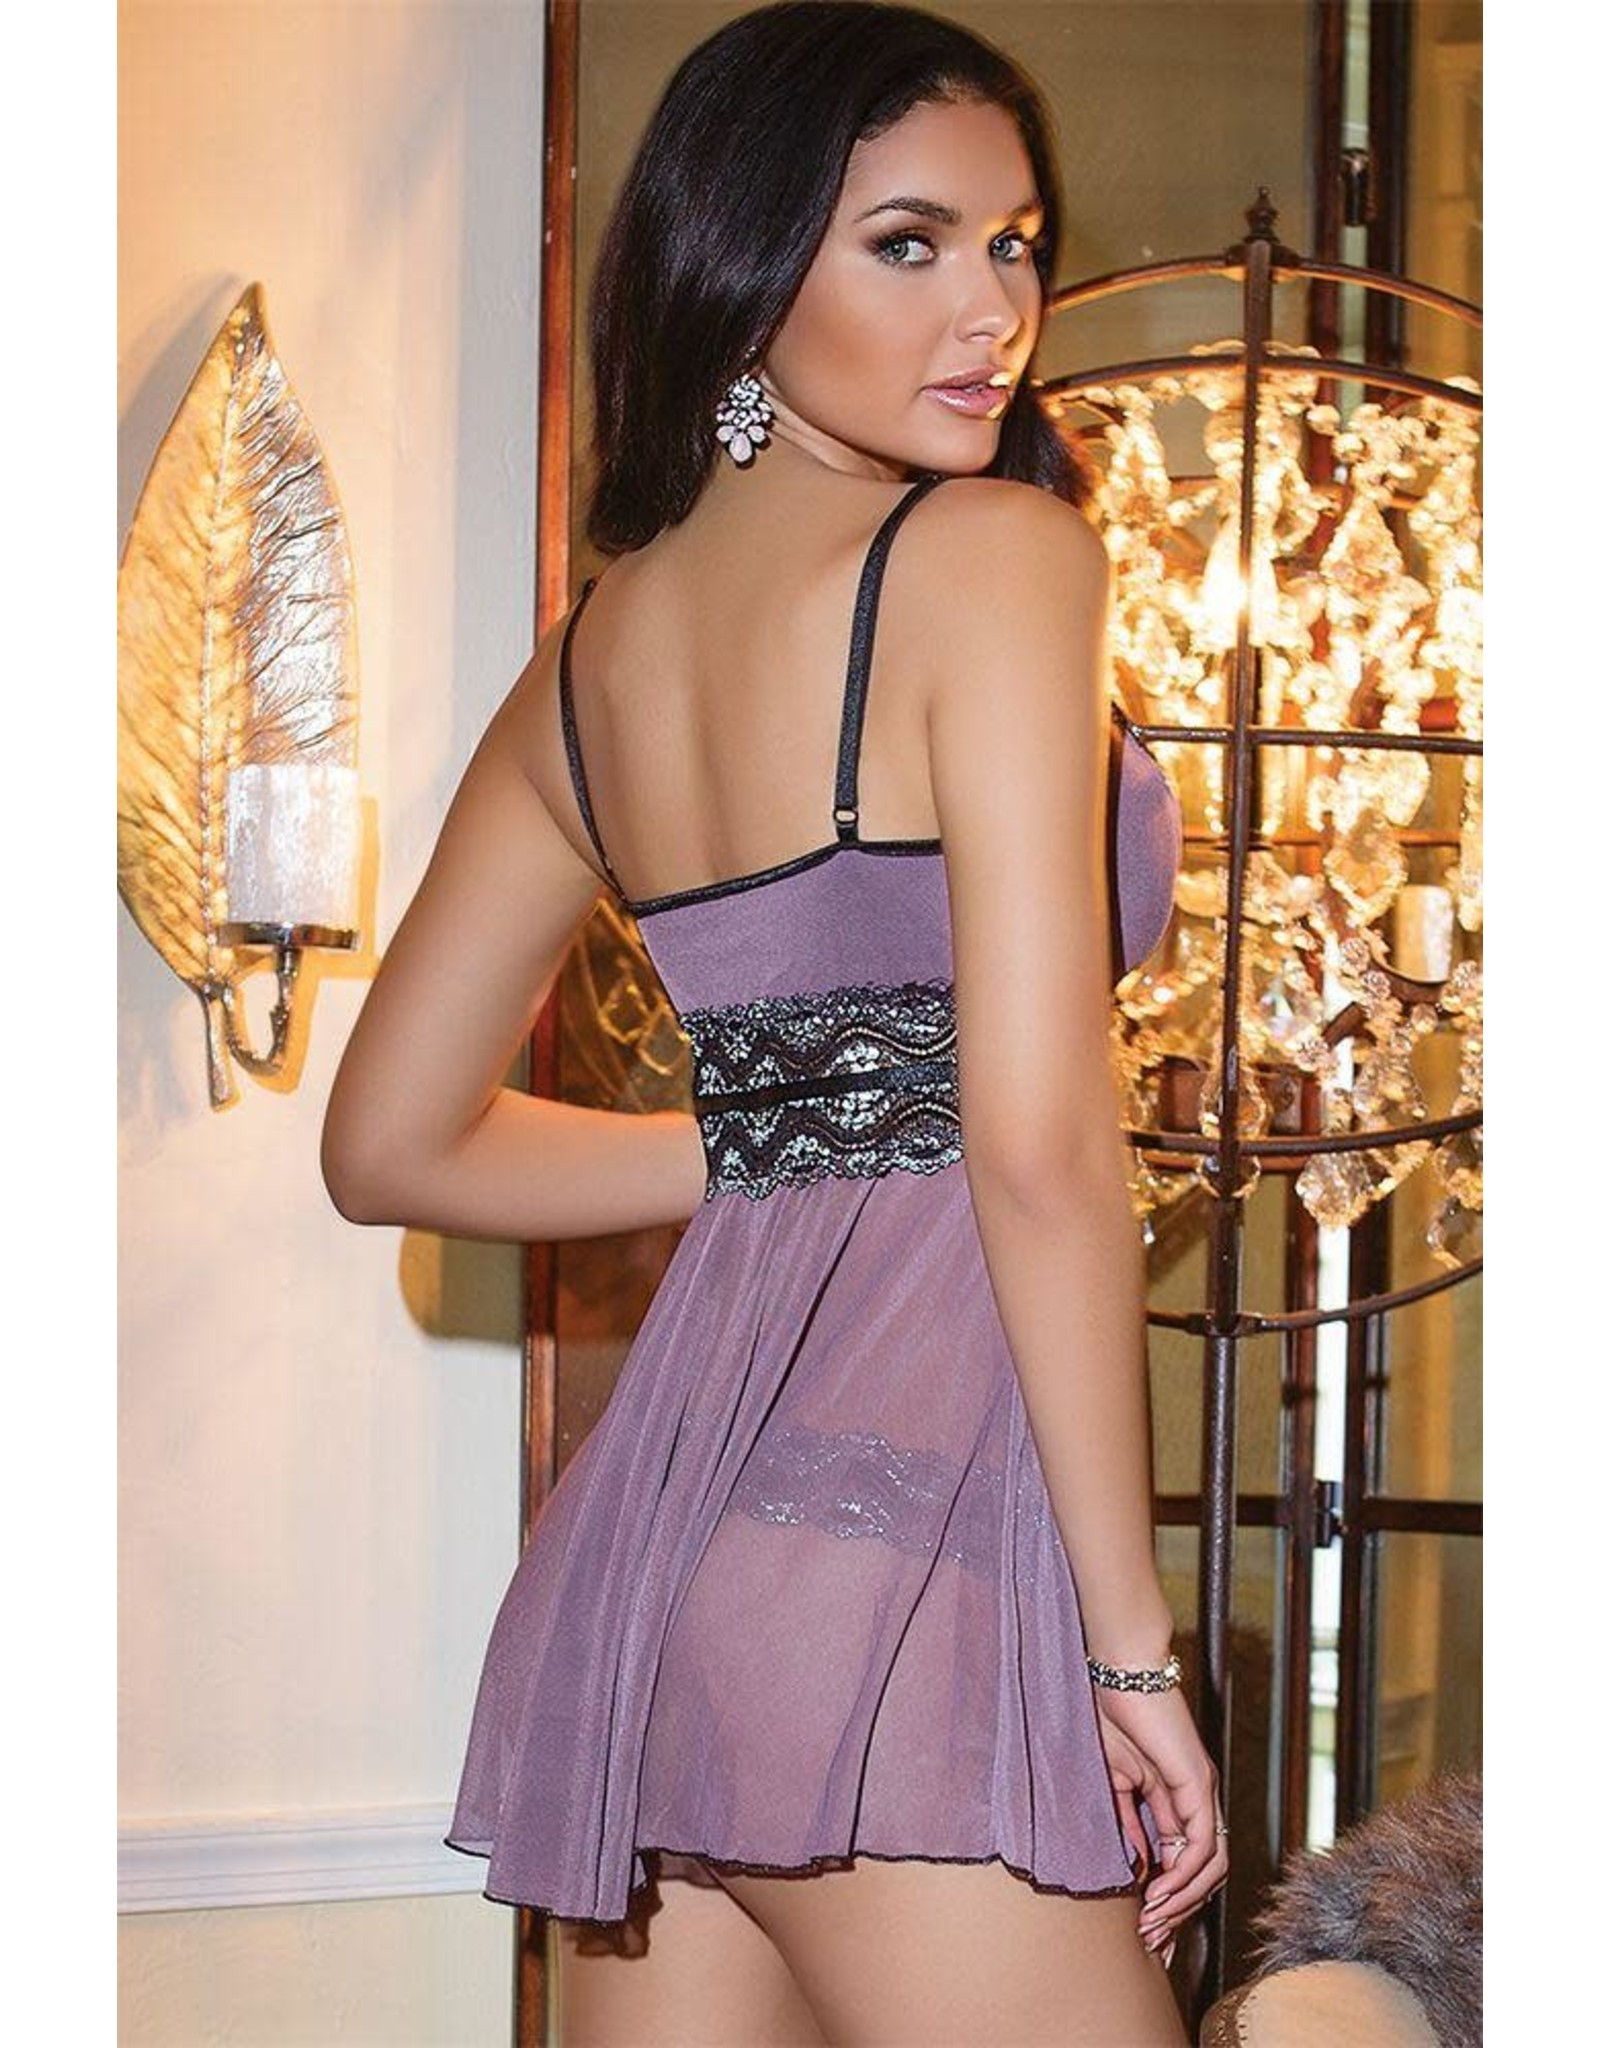 Coquette Mesh & Metallic Lace Babydoll and G-String in Large